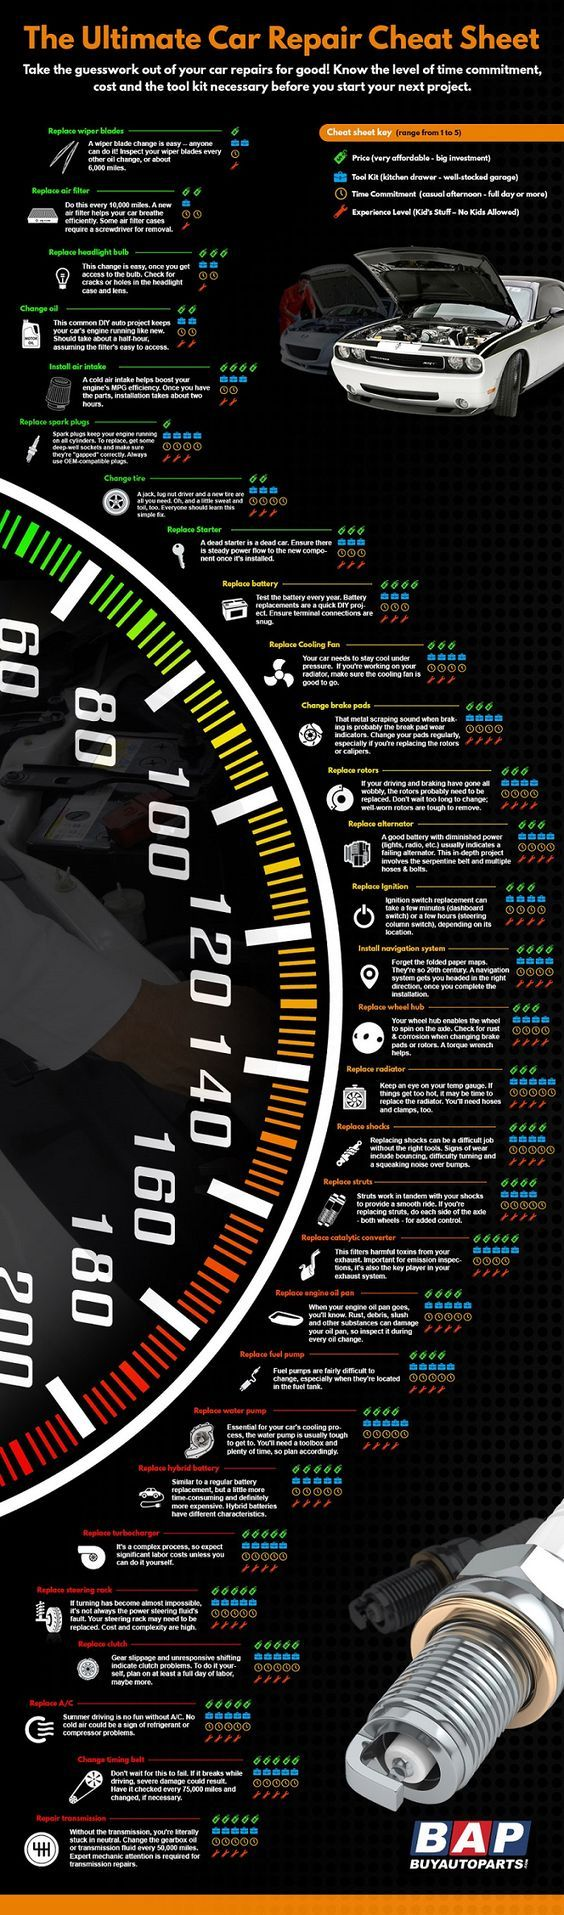 218 best vehicle tips images on pinterest households car stuff infographic the ultimate car repair cheat sheet fandeluxe Images